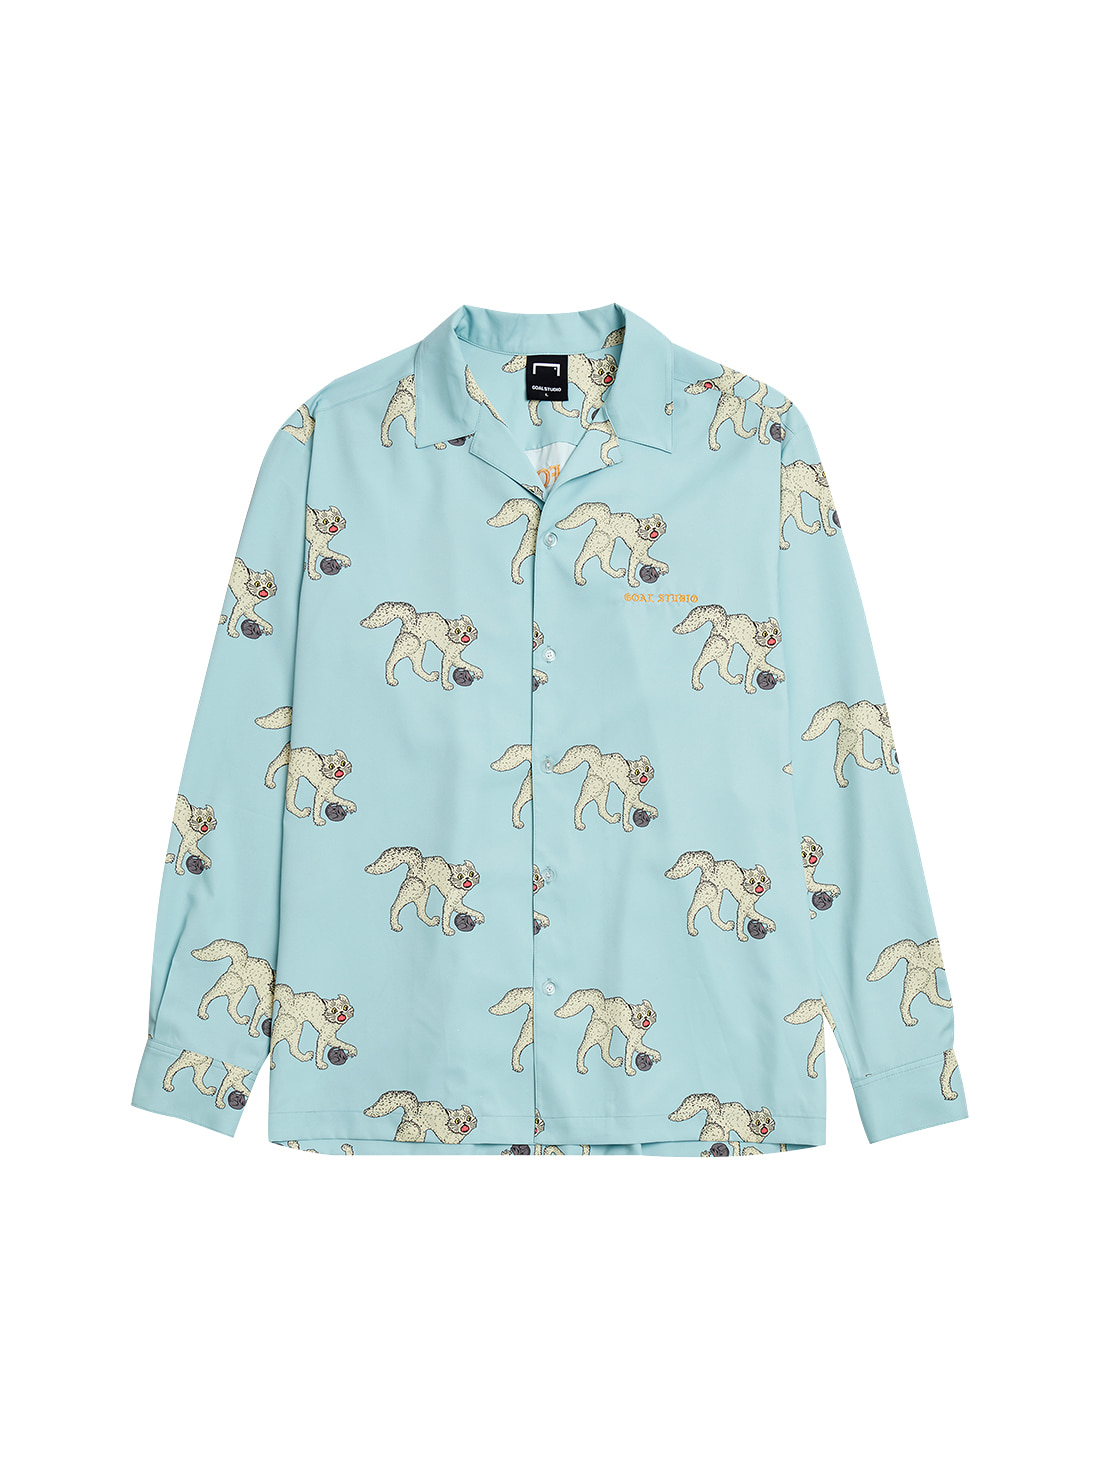 GOALSTUDIO MC ALL OVER PATTERN SHIRTS - LIGHT BLUE